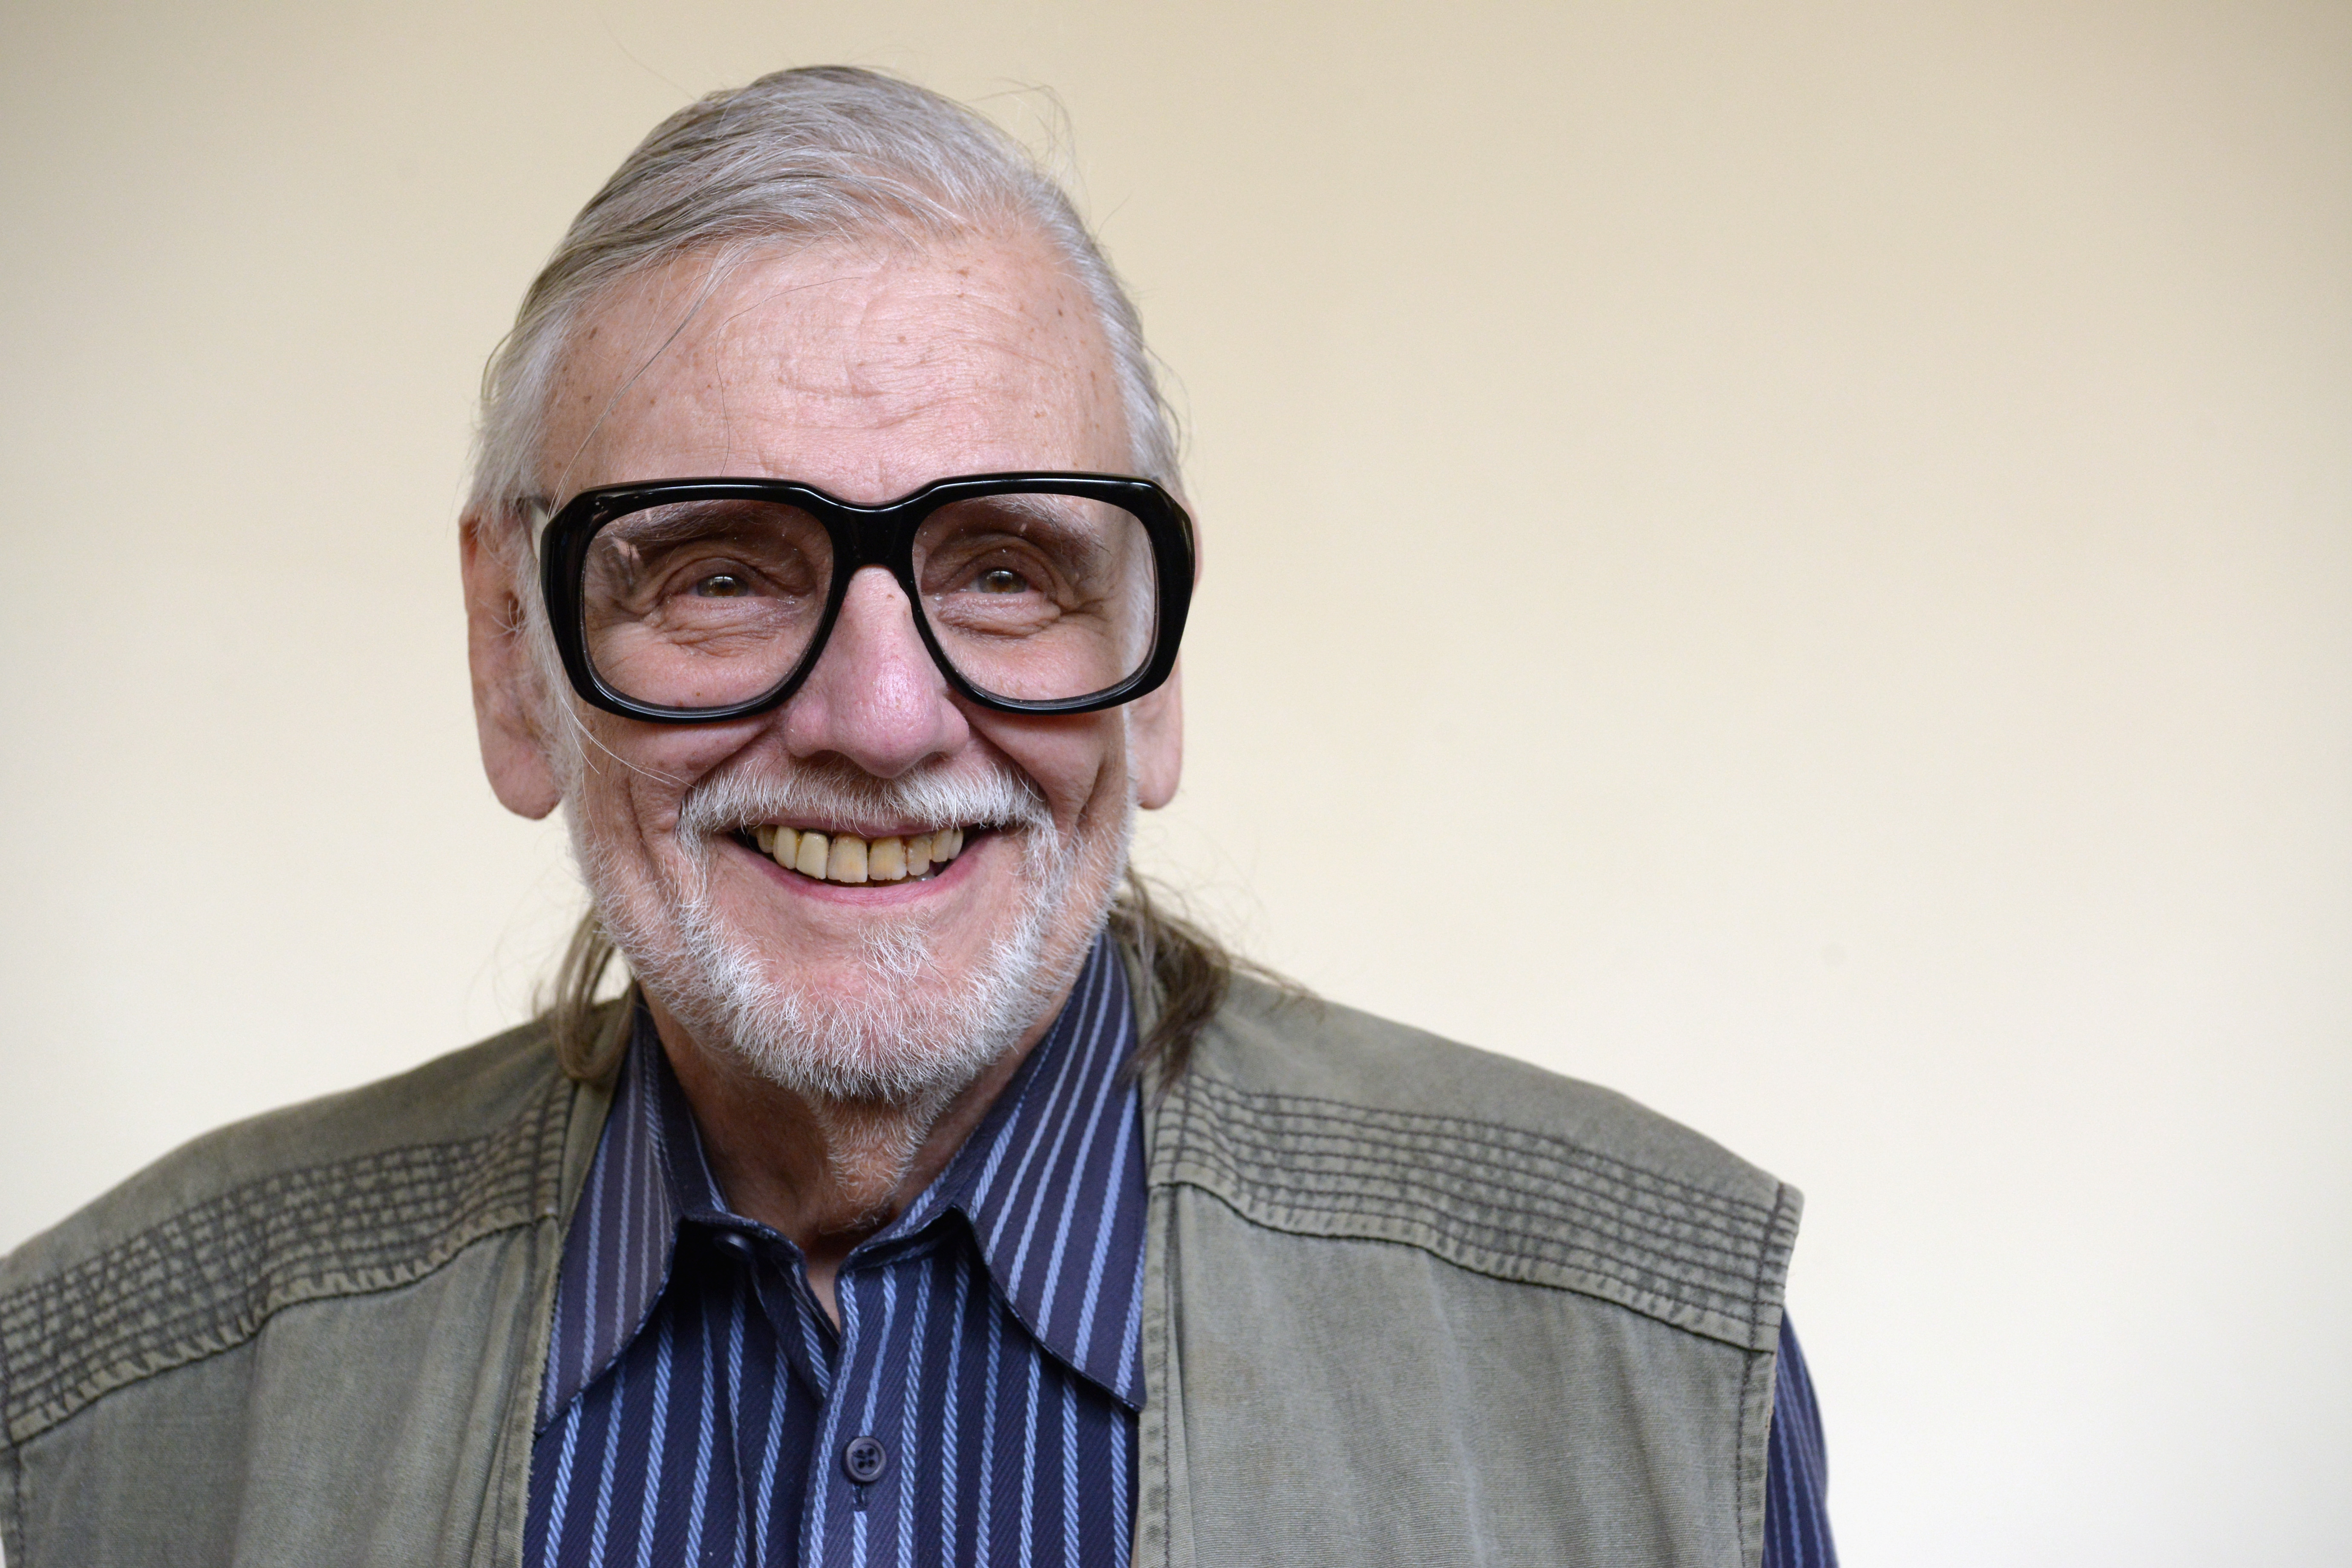 American film Director, screen writer and editor George Romero poses for a photo after attending a press conference during the Lucca Film Festival 2016 on April 7, 2016 in Lucca, Italy.